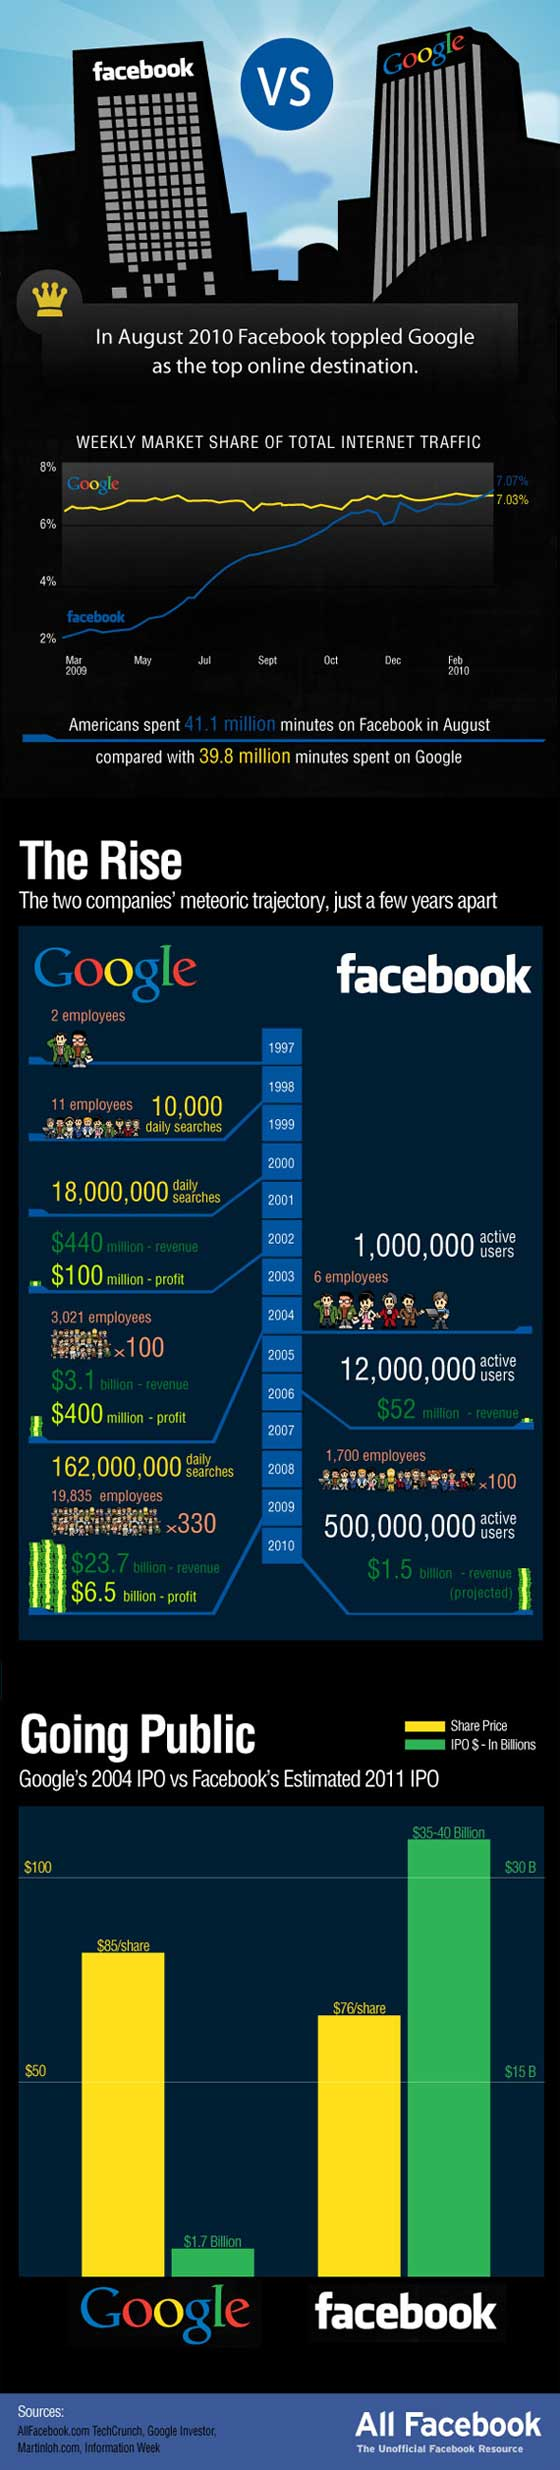 google-contre-facebook